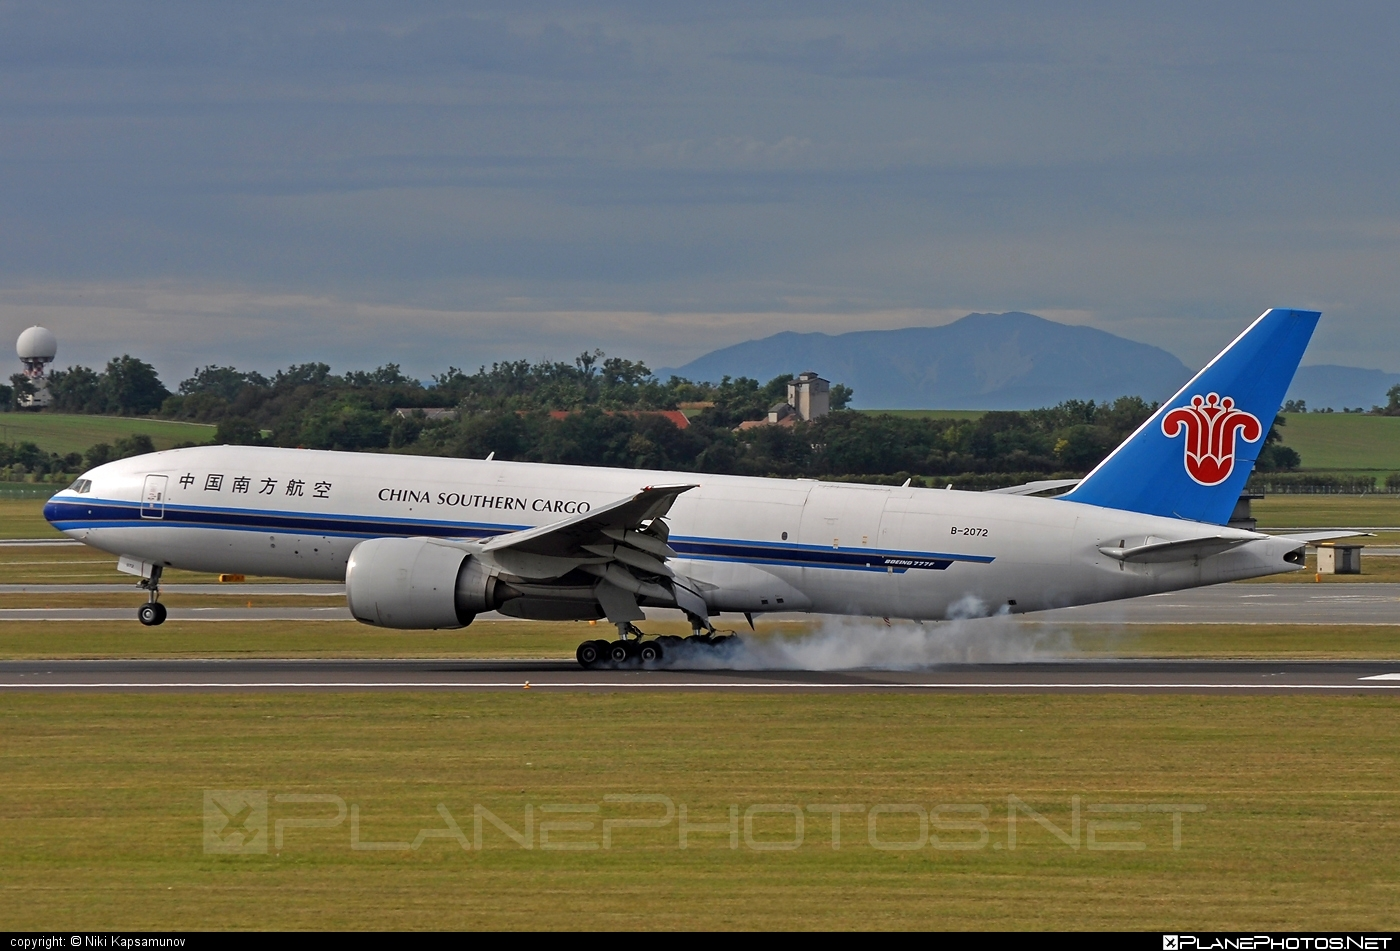 Boeing 777F - B-2072 operated by China Southern Cargo #b777 #b777f #b777freighter #boeing #boeing777 #tripleseven